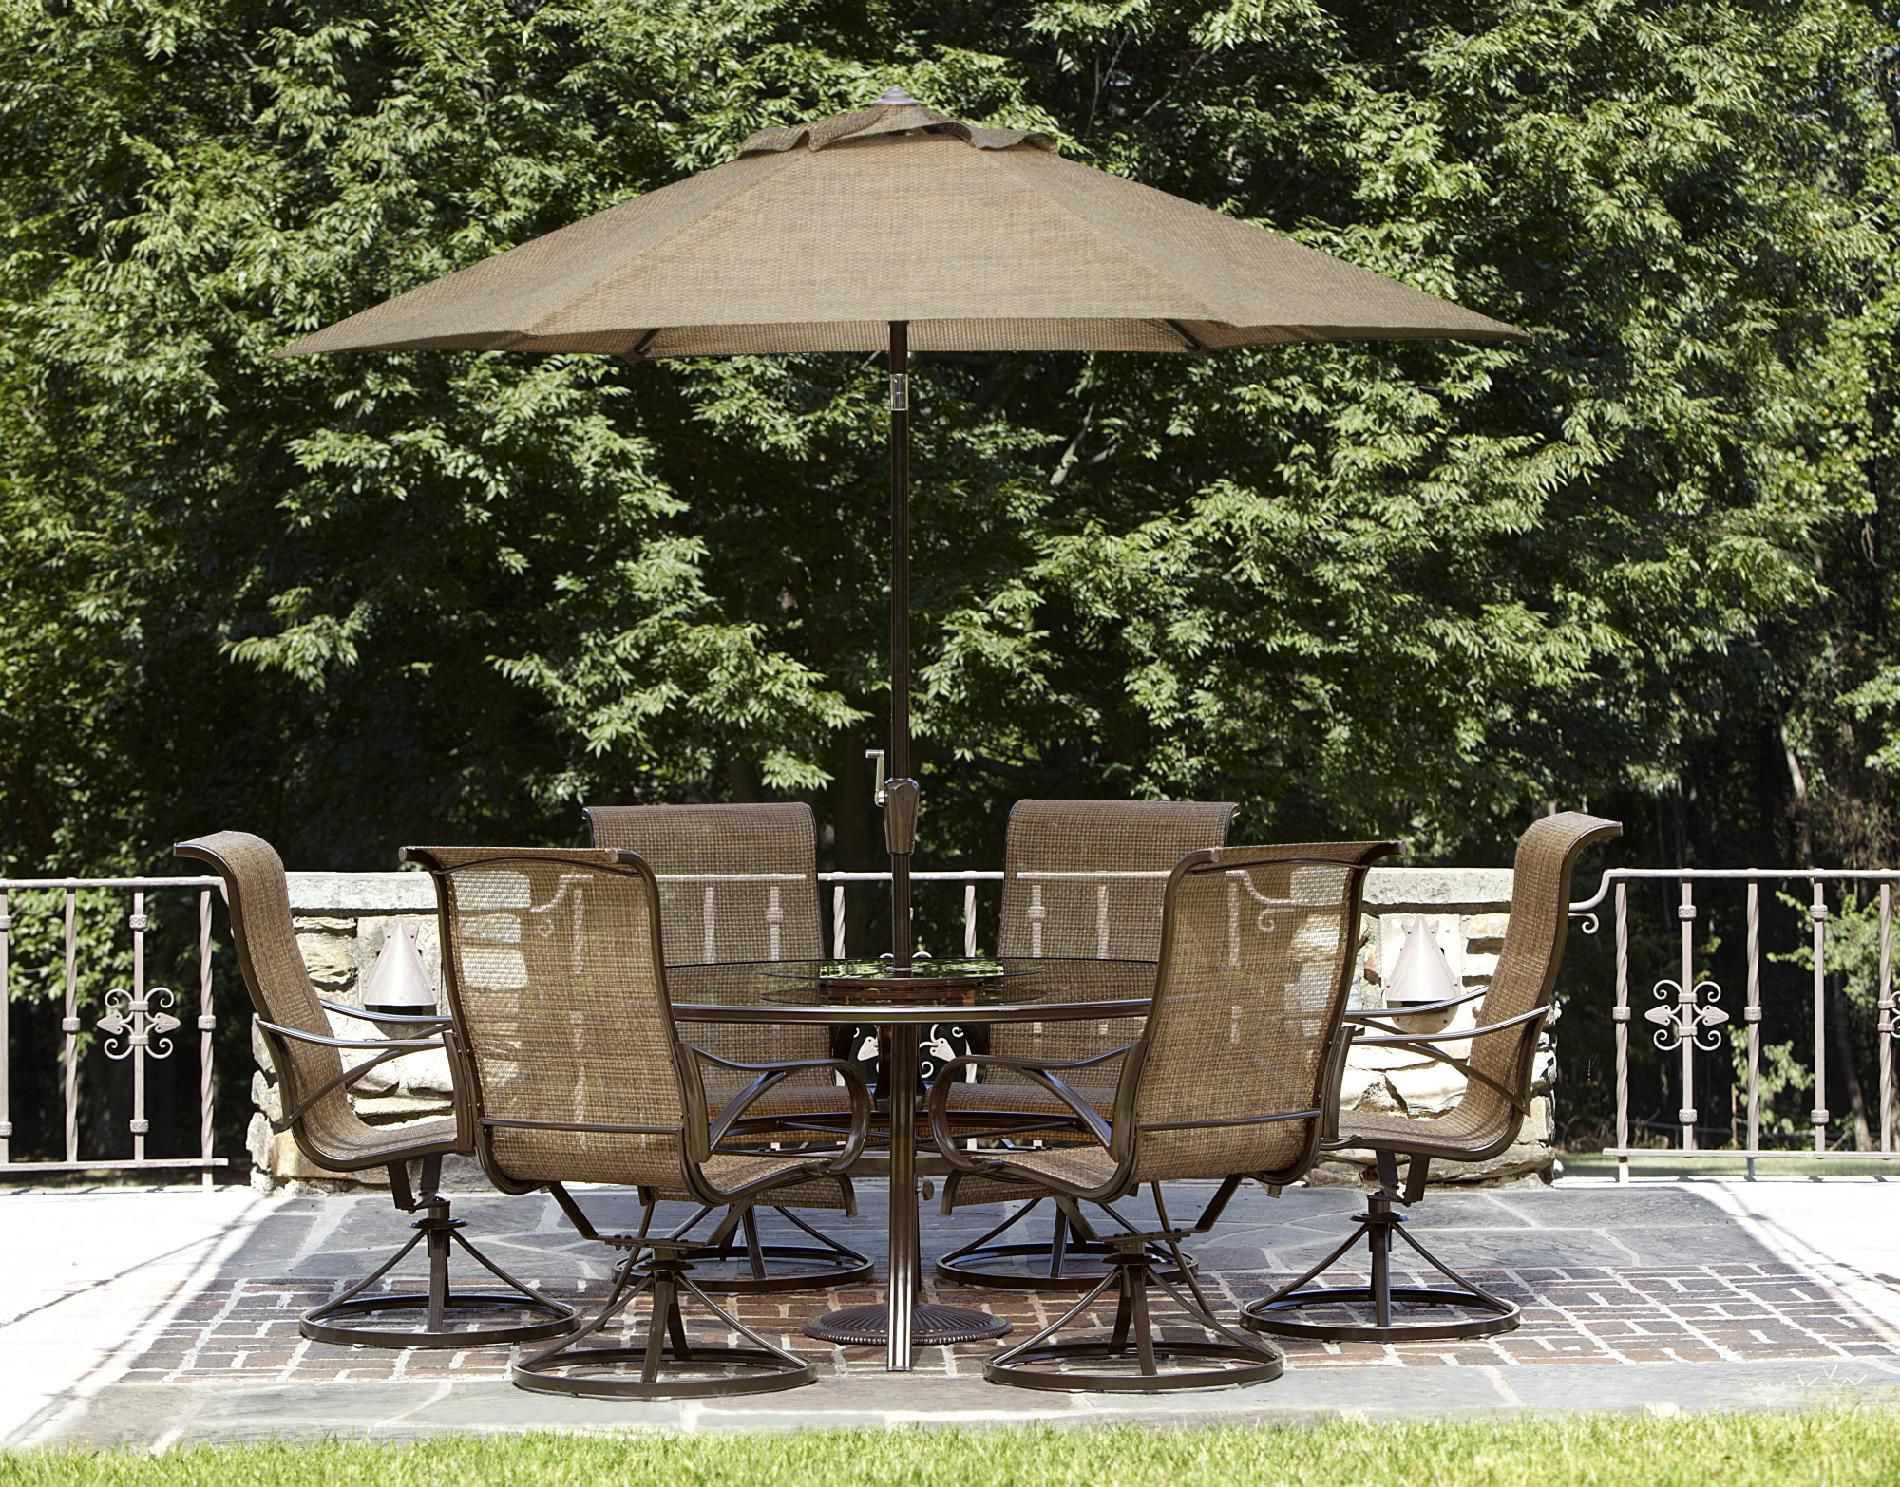 Home Depot Patio Umbrella at Home and Interior Design Ideas